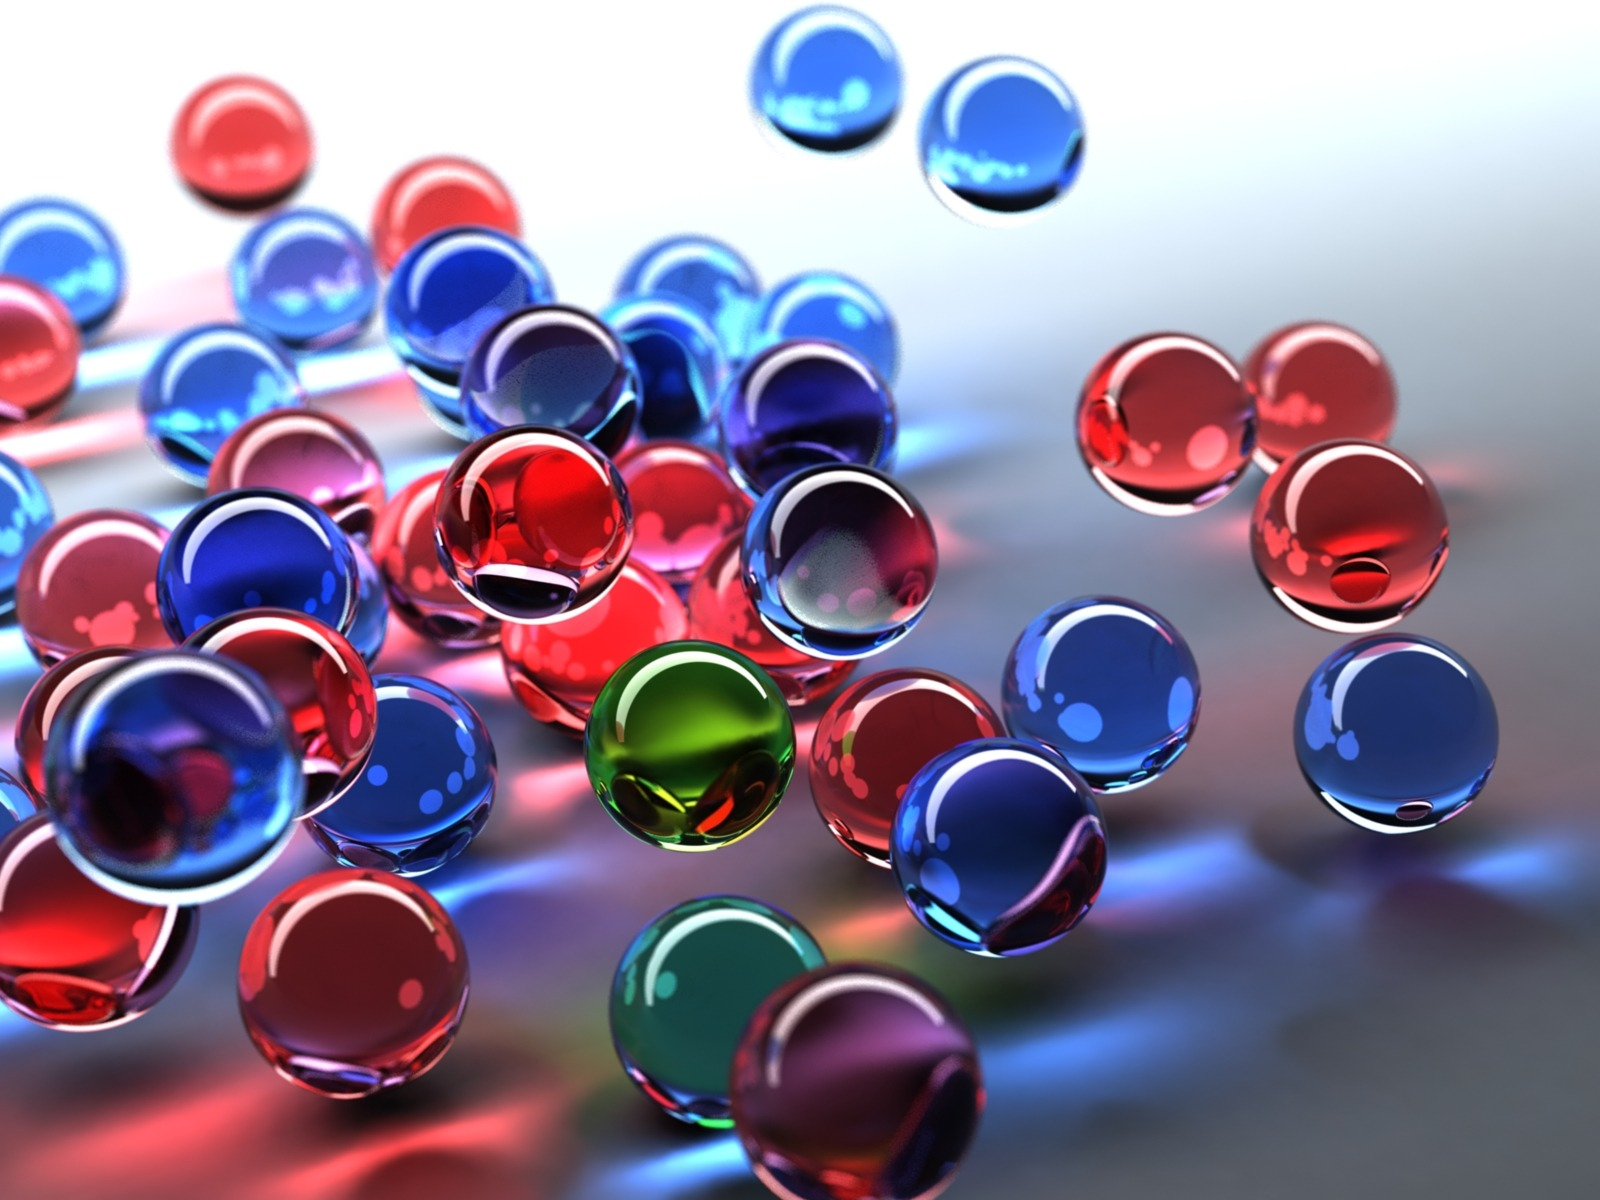 3d Bubbles Wallpaper: 3D Bubbles Wallpaper Abstract 3D Wallpapers In Jpg Format